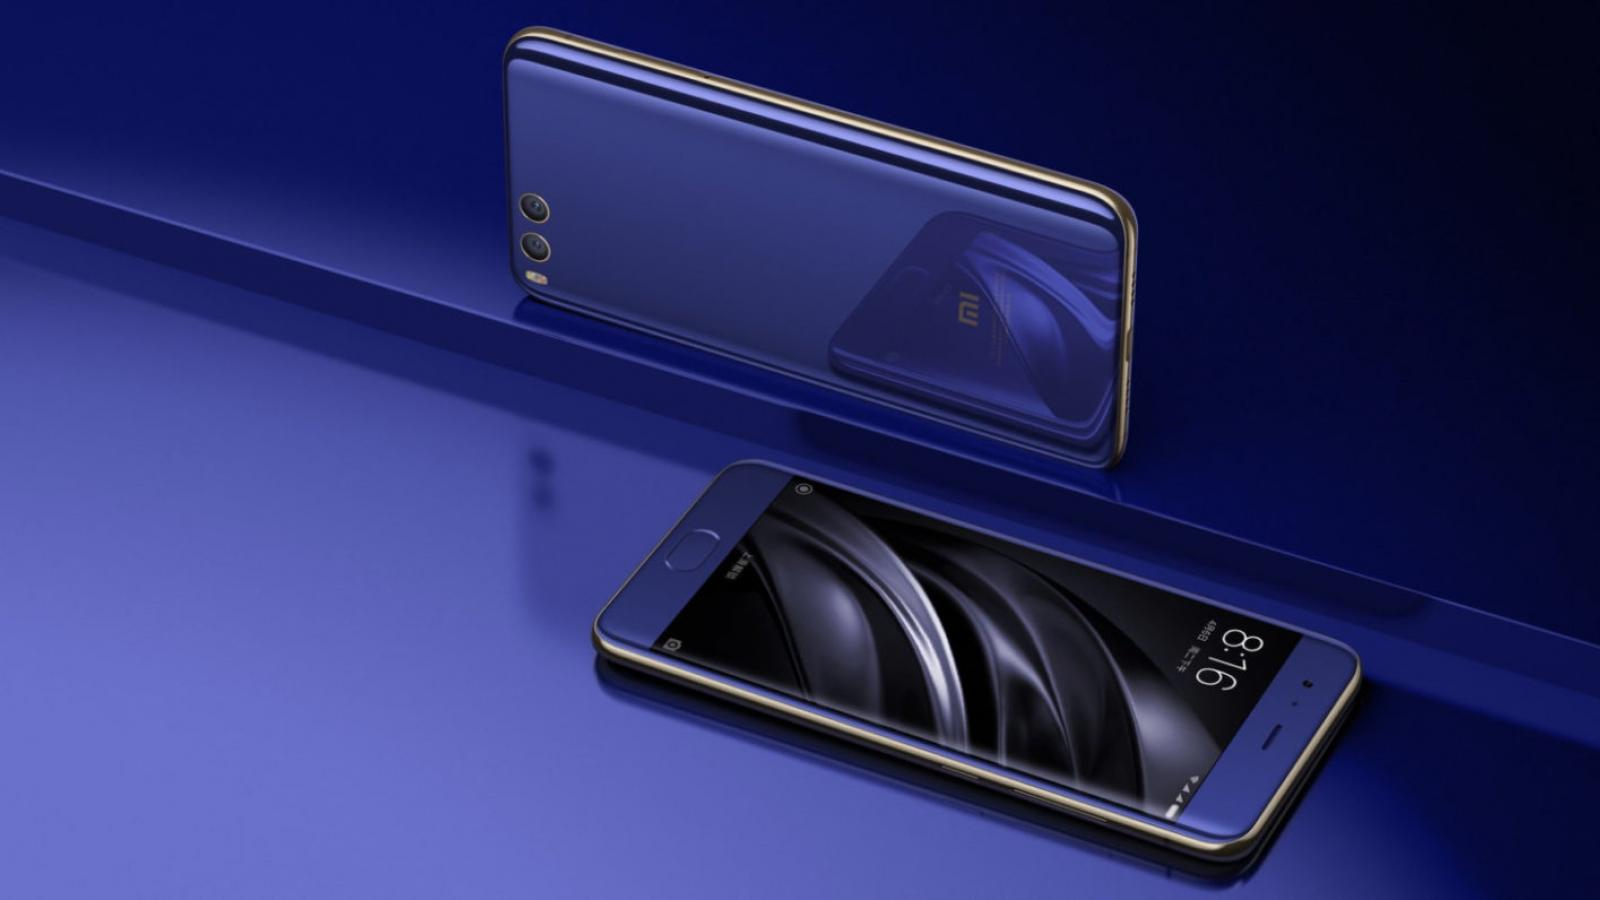 Weekly Roundup: $360 dual-camera Xiaomi Mi 6, Microsoft New To-Do App and More